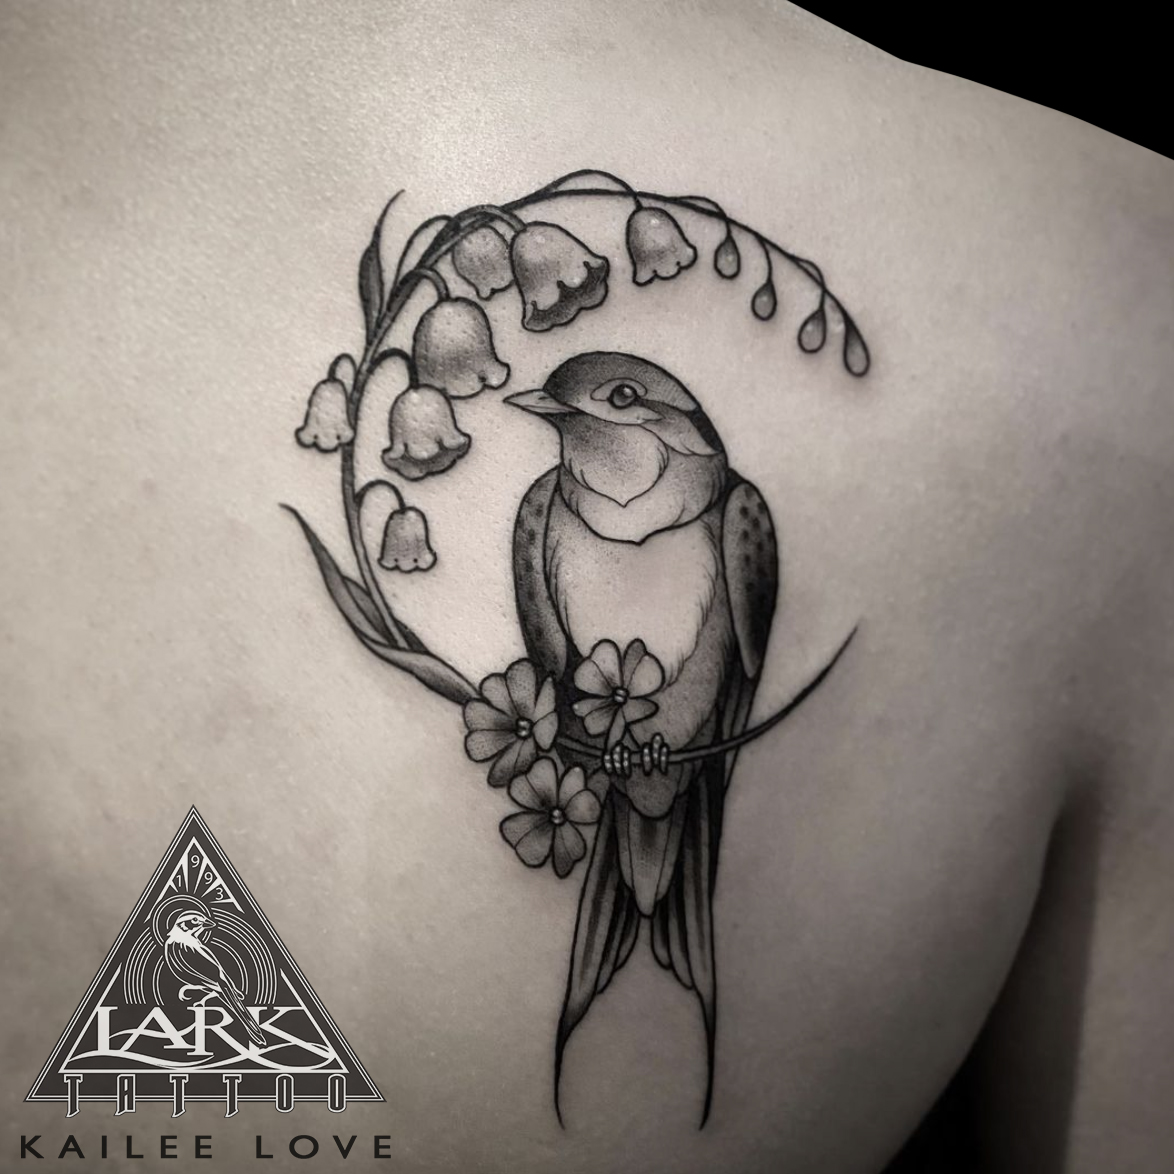 LarkTattoo, KaileeLove, KaileeLoveLarkTattoo, Tattoo, Tattoos, Bird, BirdTattoo, Swallow, SwallowTattoo, SwallowBird, SwallowBirdTattoo, Flower, FlowerTattoo, LilyOfTheValley, LilyOfTheValleyTattoo, ConvallariaMajalis, ConvallariaMajalisTattoo, BNGTattoo, BlackAndGrey, BlackAndGreyTattoo, BlackAndGray, BlackAndGrayTattoo, BNGInkSociety, Female, FemaleArtist, FemaleTattooer, LadyTattooer, LongIslandTattooArtist, LongIslandTattooer, LongIslandTattoo, TattooArtist, Tattoist, BNG , Tattooer, LongIslandTattooArtist, LongIslandTattooer, LongIslandTattoo, TattooOfTheDay, Tat, Tats, Tatts, Tatted, Inked, Ink, TattooInk, AmazingInk, AmazingTattoo, BodyArt, LarkTattooWestbury, Westbury, LongIsland, NY, NewYork, USA, Art, Tattedup, InkedUp, LarkTattoos